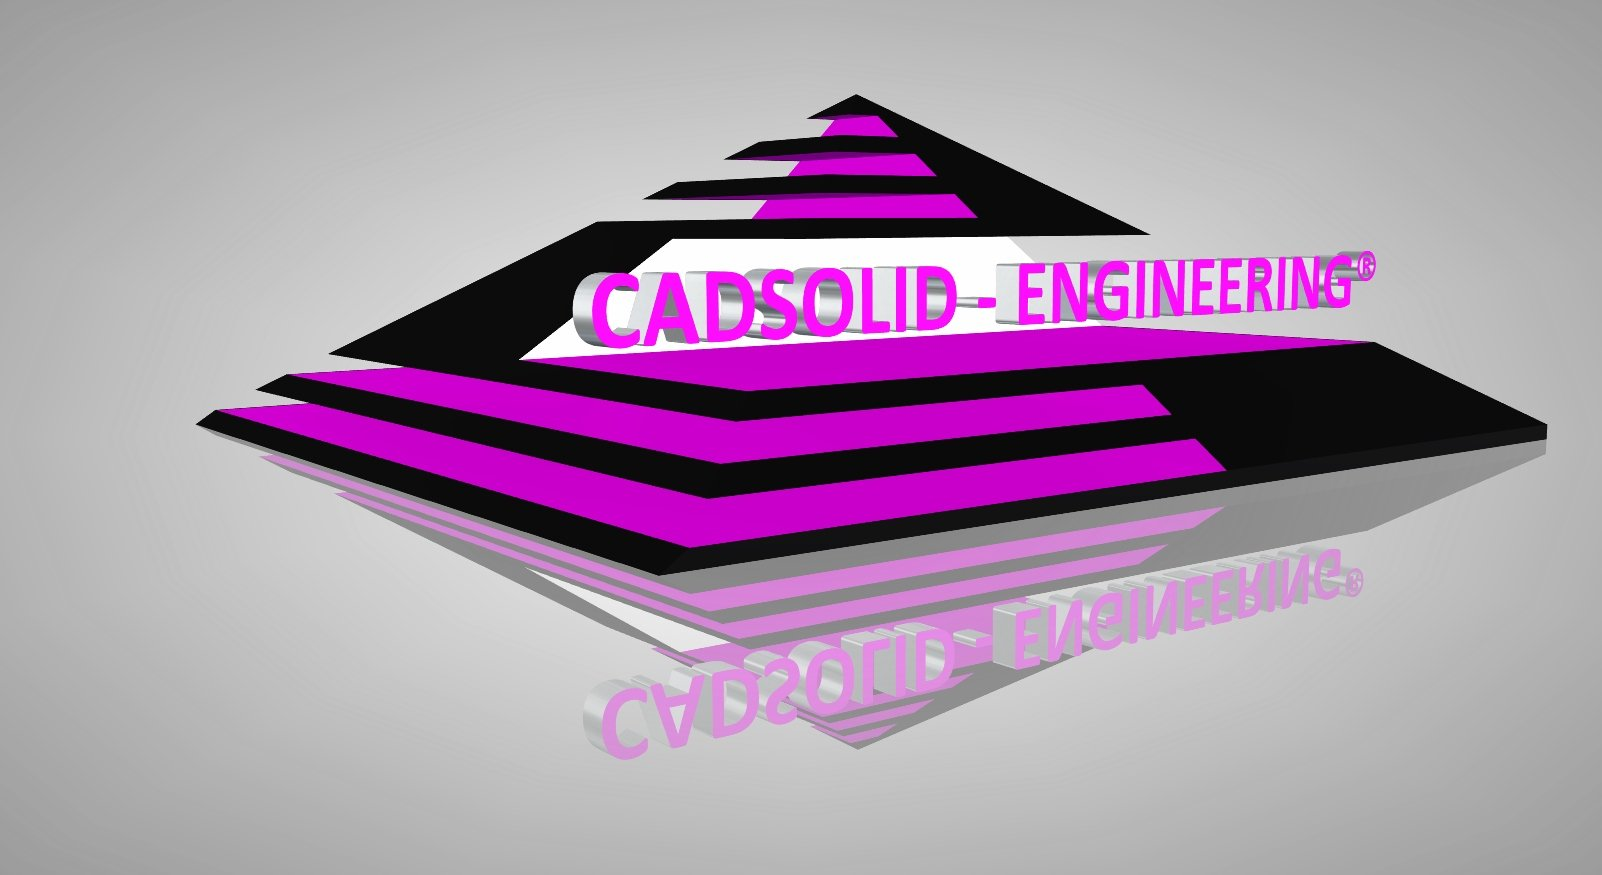 Cse Machines Rig S Equipment Cadsolid Engineering Com